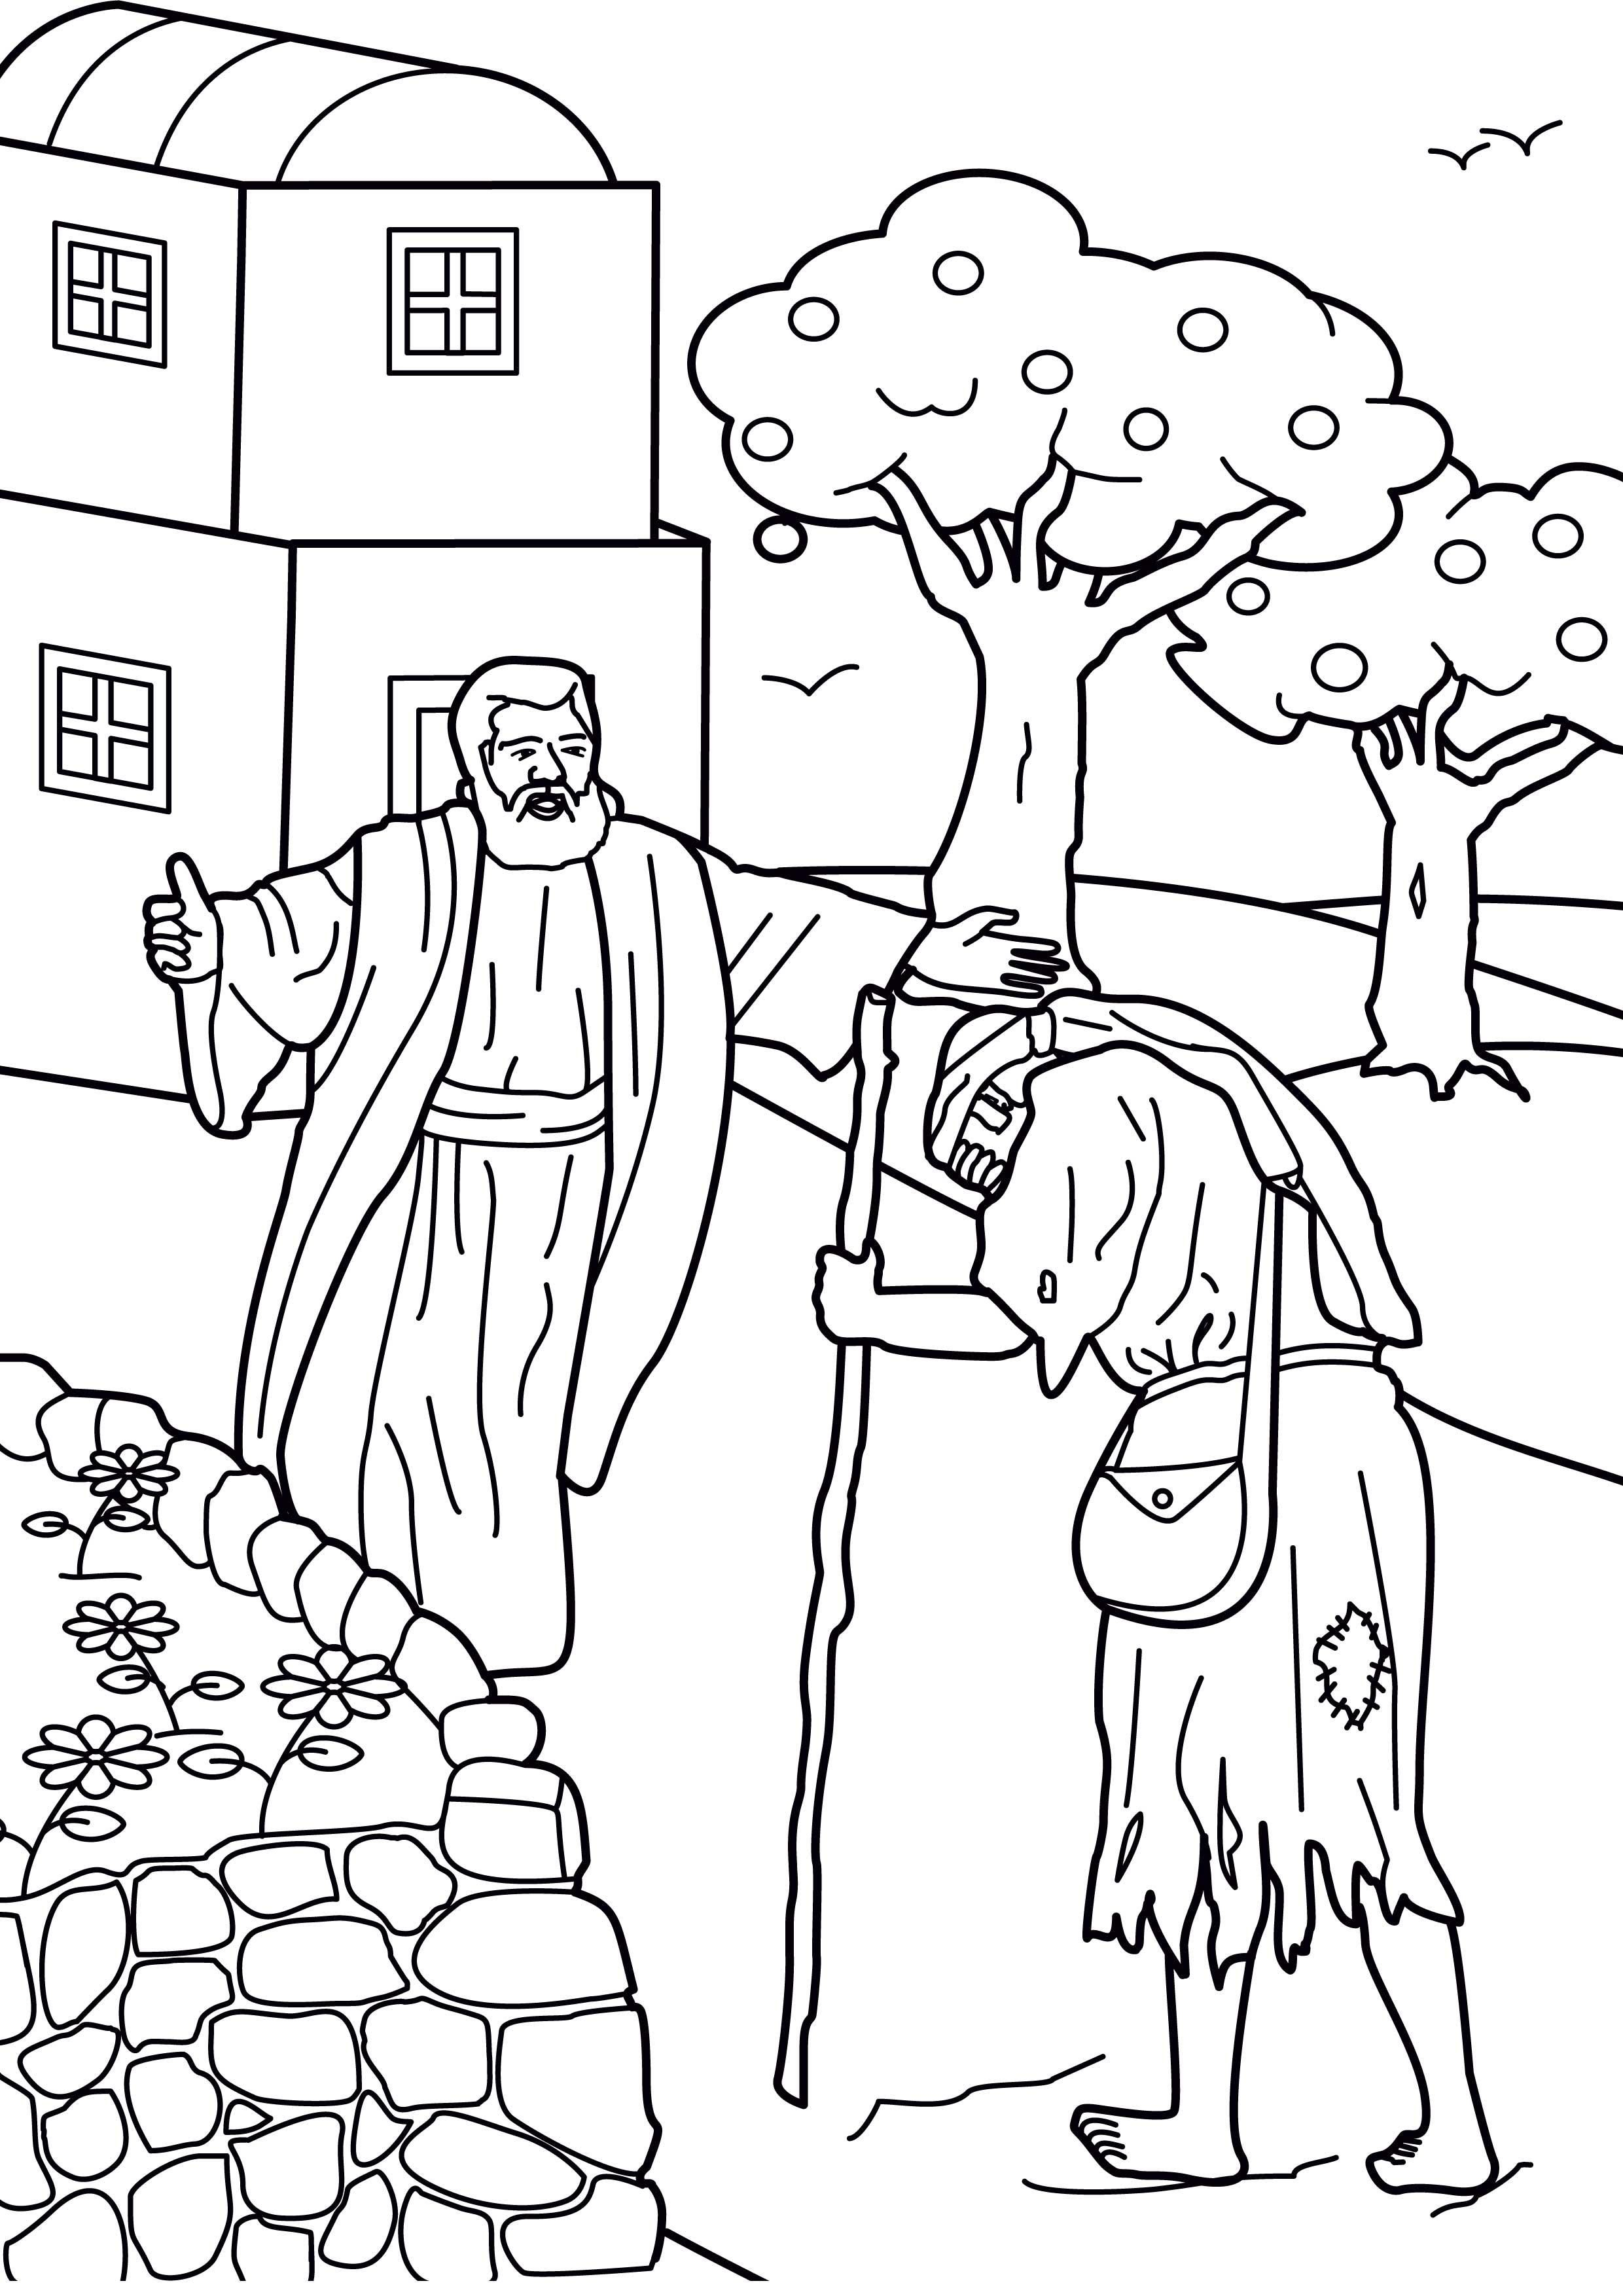 Amazoncom Bible for Kids A Collection of Bible Stories